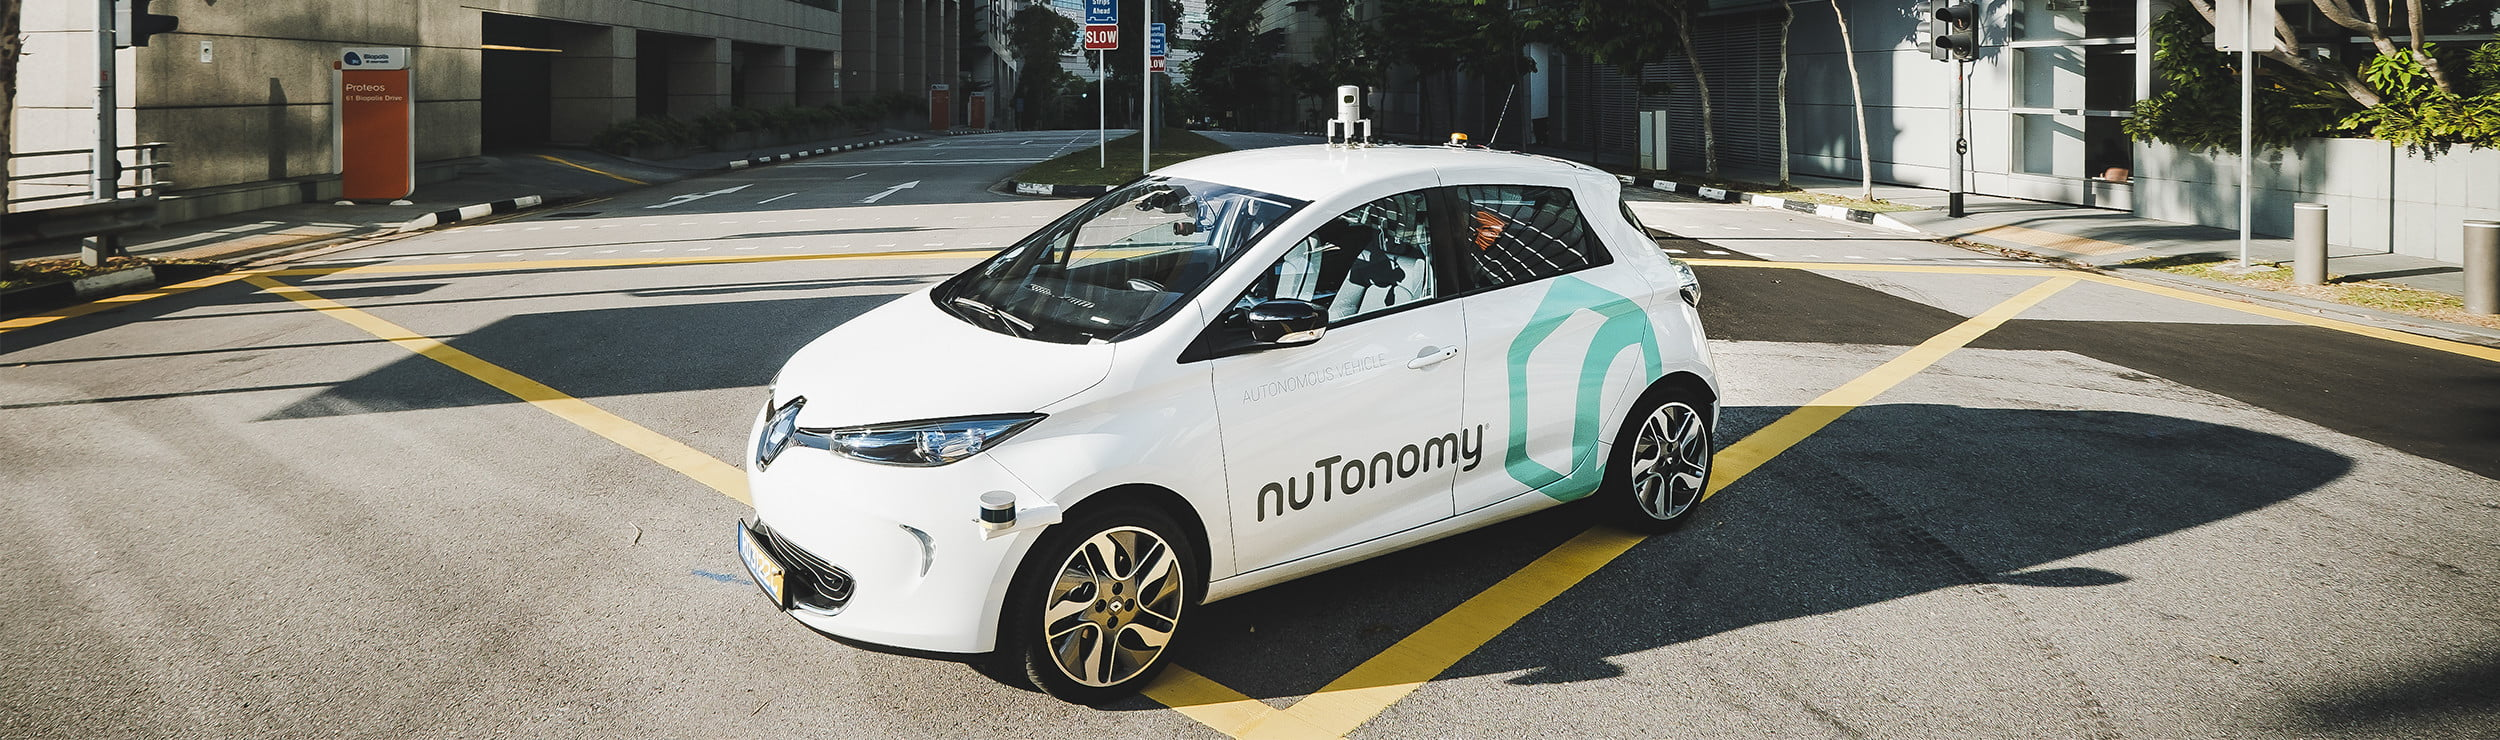 nuTonomy self-driving car